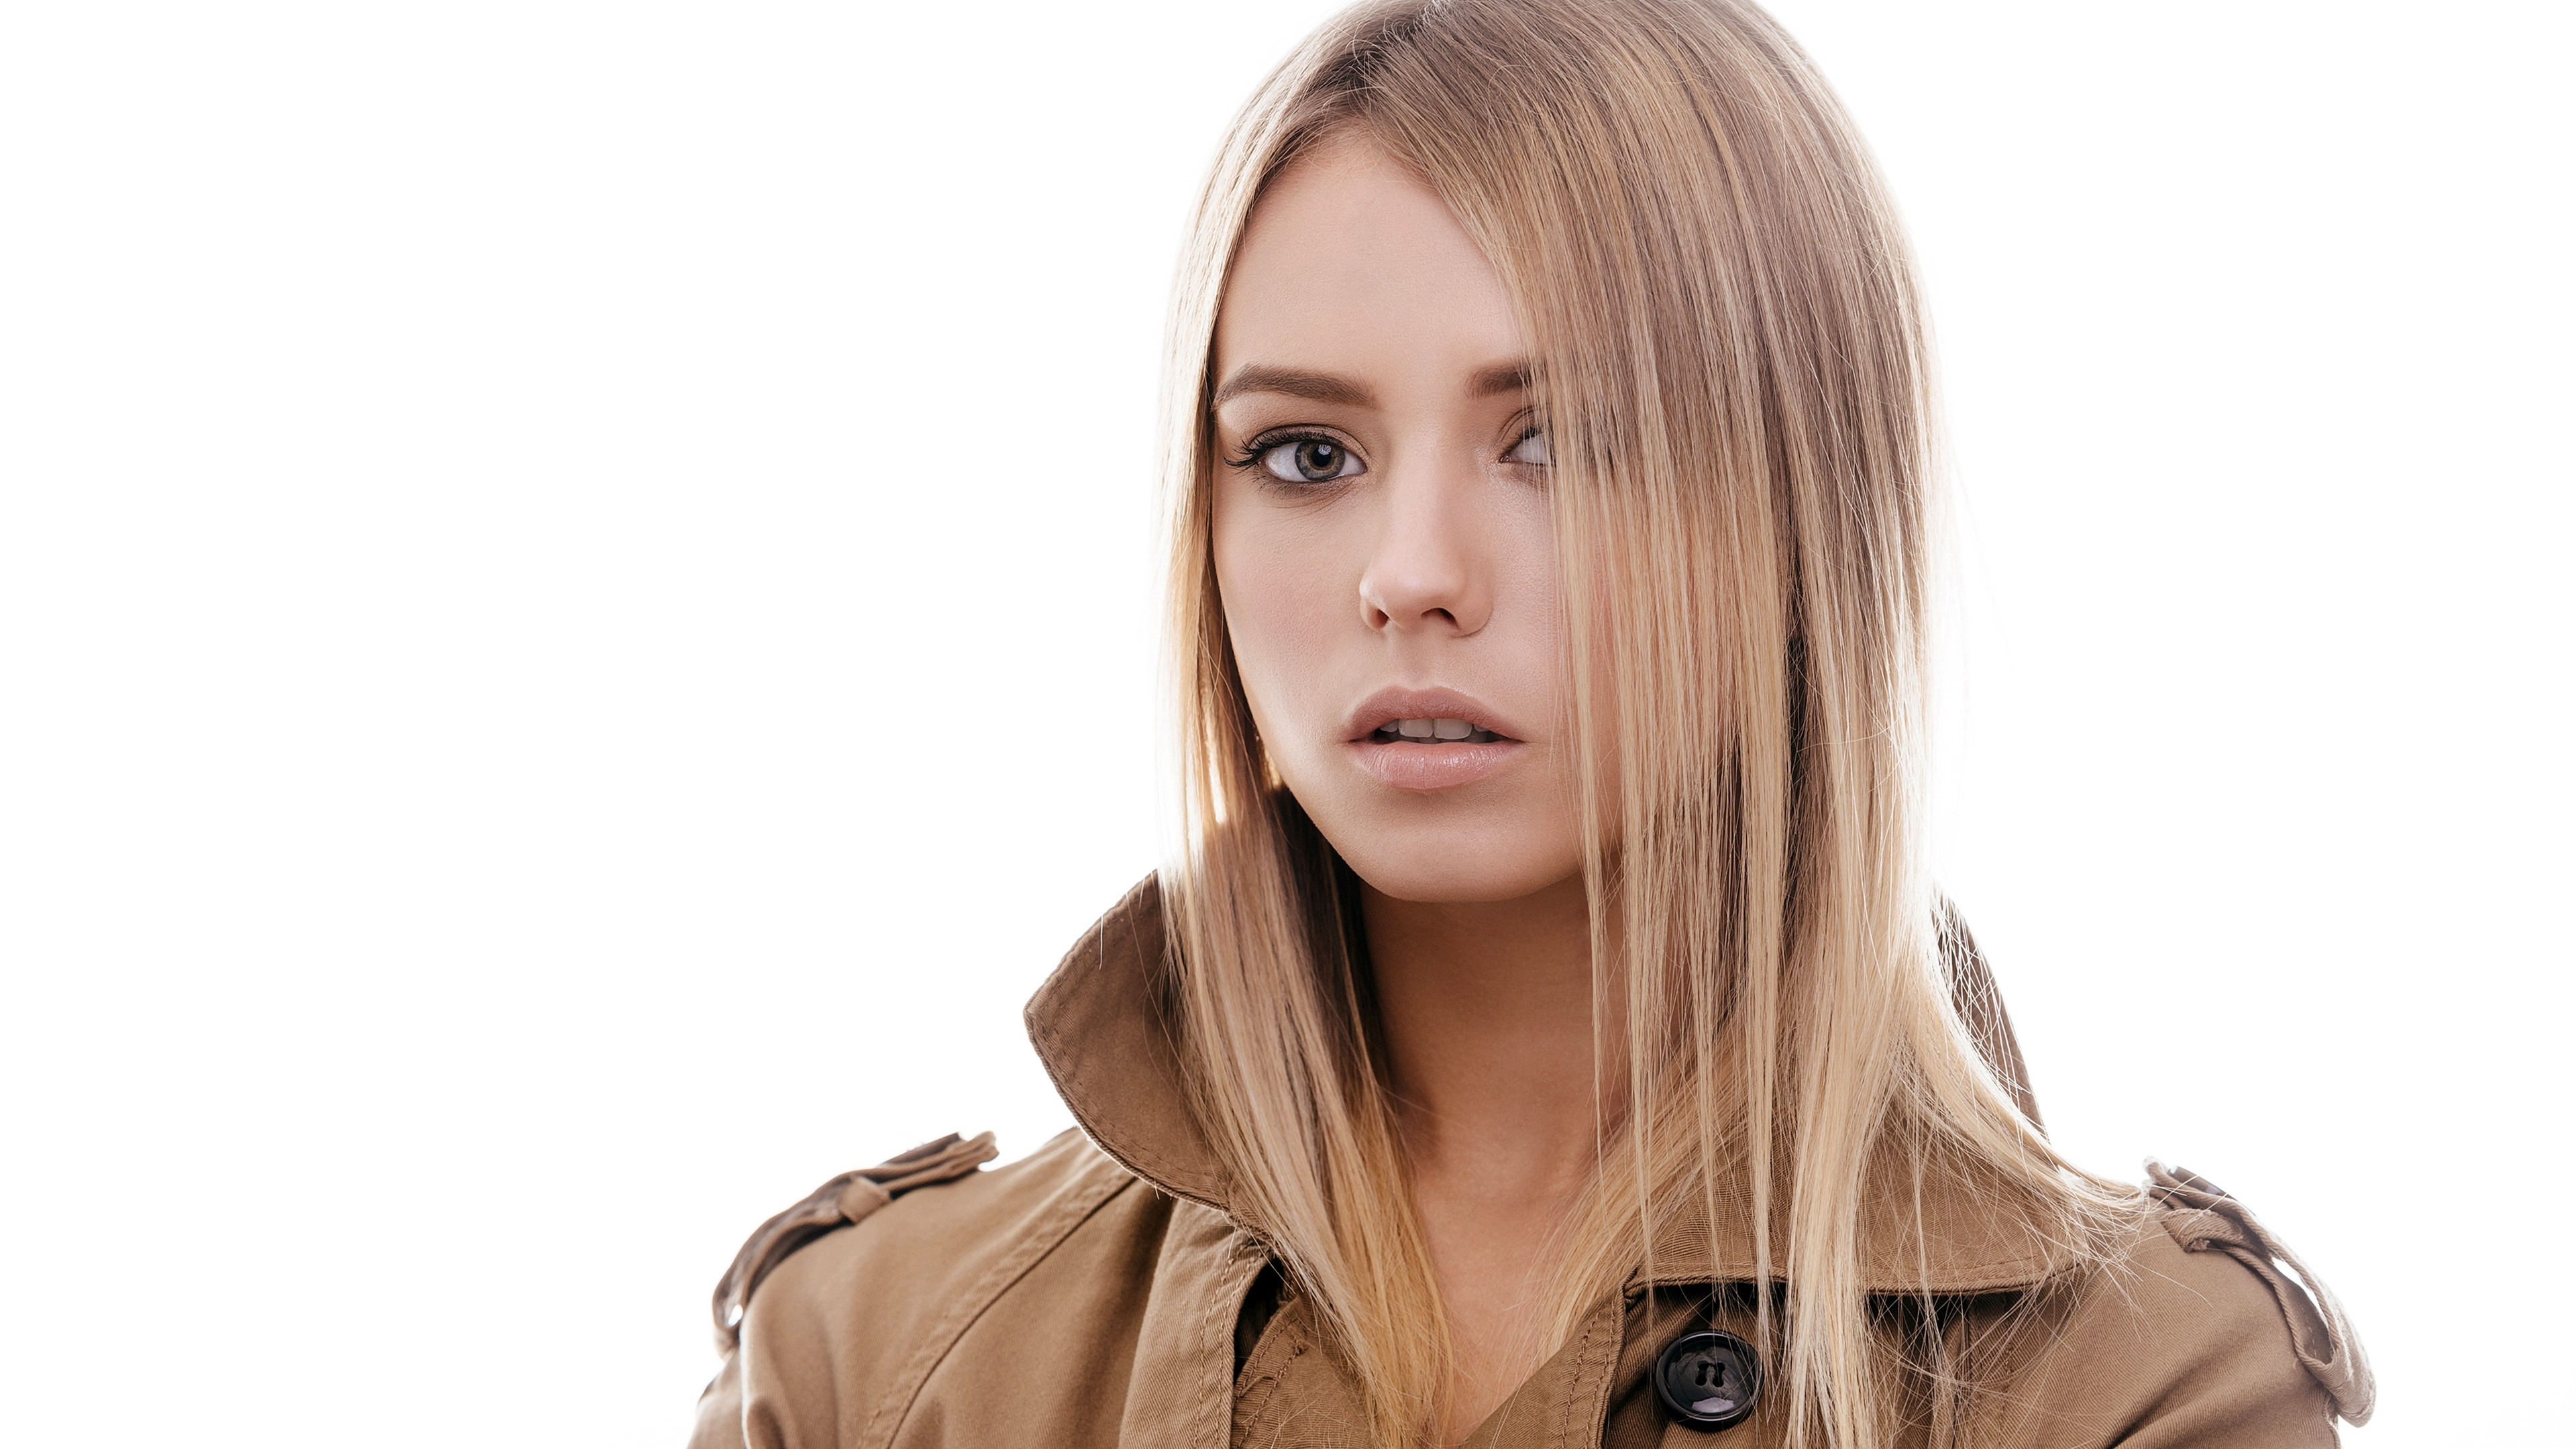 Wallpaper Blonde Girl Hairstyle White Background 3840x2160 Uhd 4k Picture Image